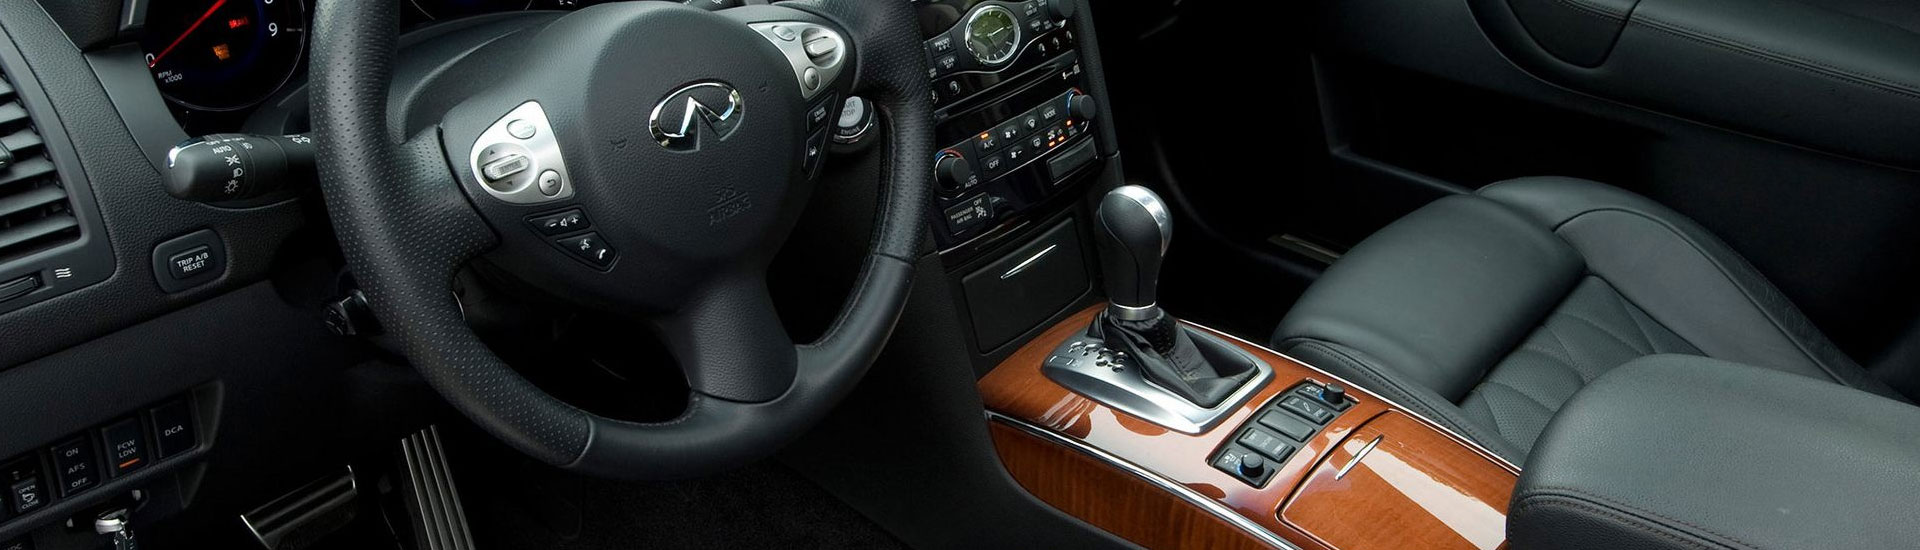 Infiniti FX35 Custom Dash Kits